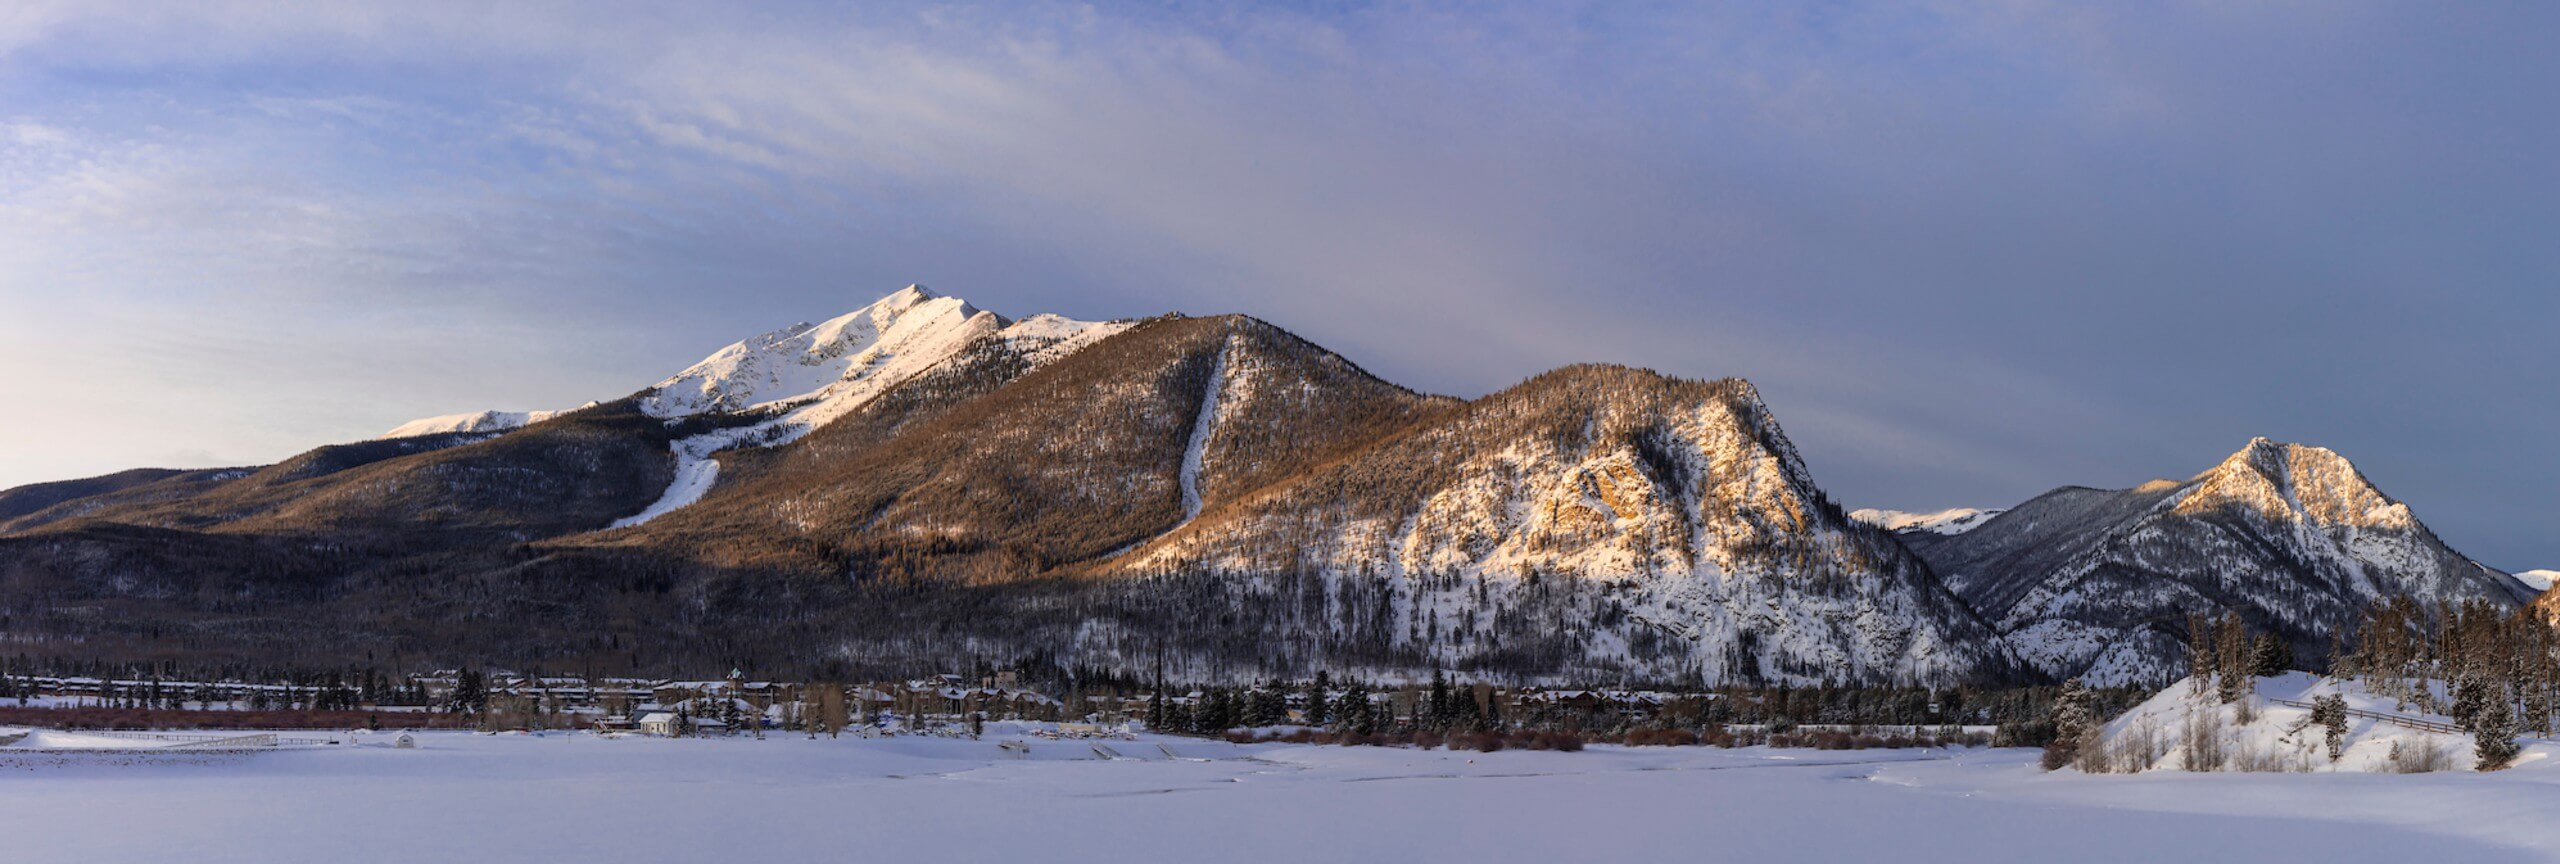 View of Mountain Royal and Peak One from Dillon Reservoir in winter